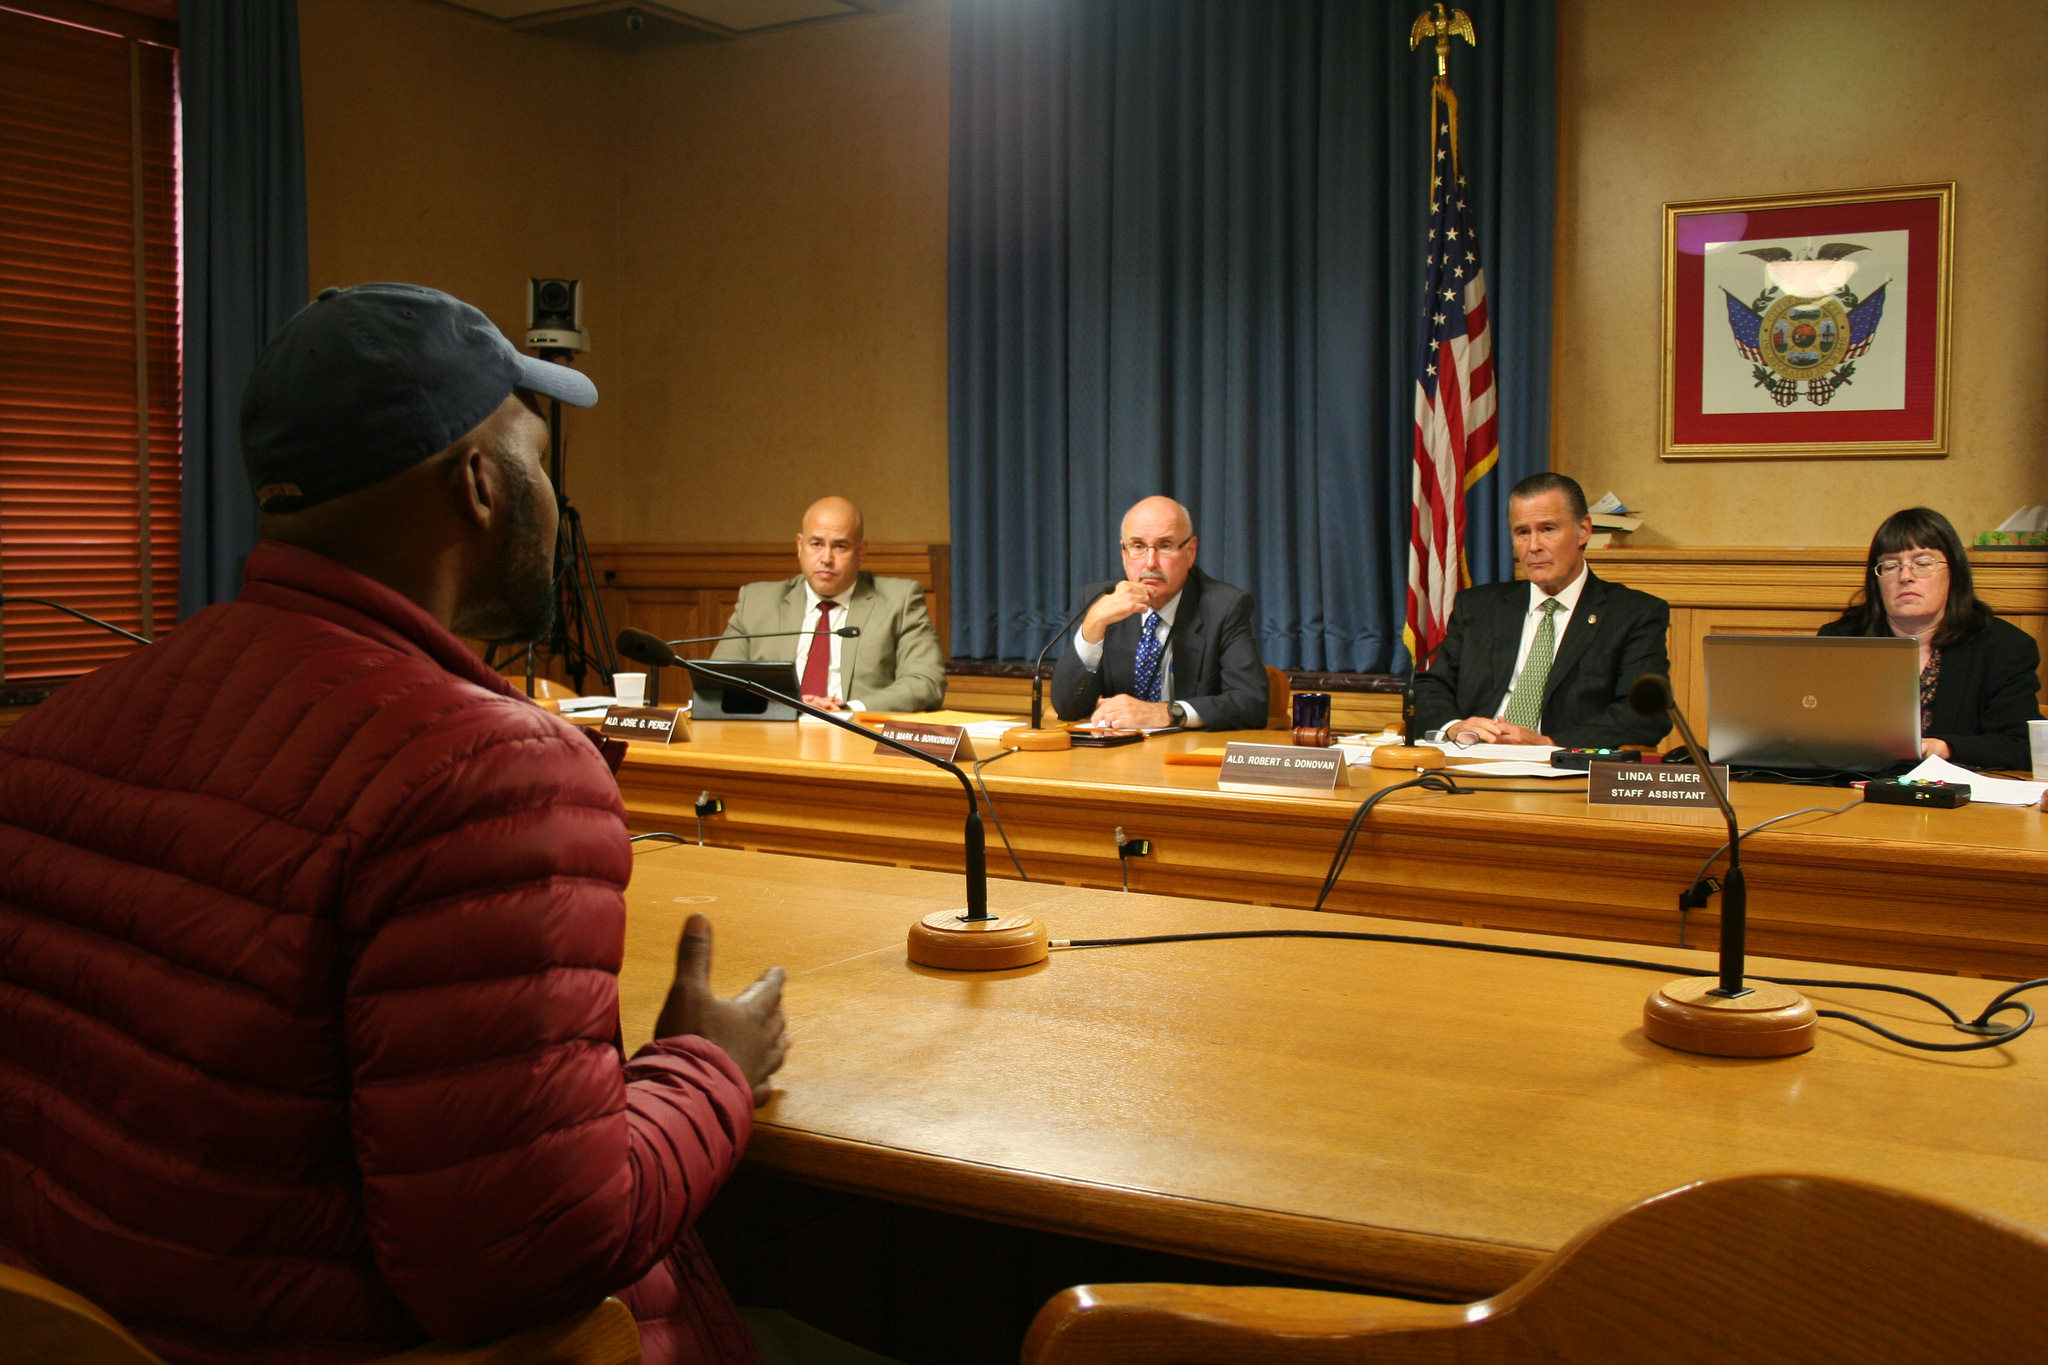 Jay Holmes, a Sherman Park resident, addresses the Public Safety Committee. (Photo by Jabril Faraj)